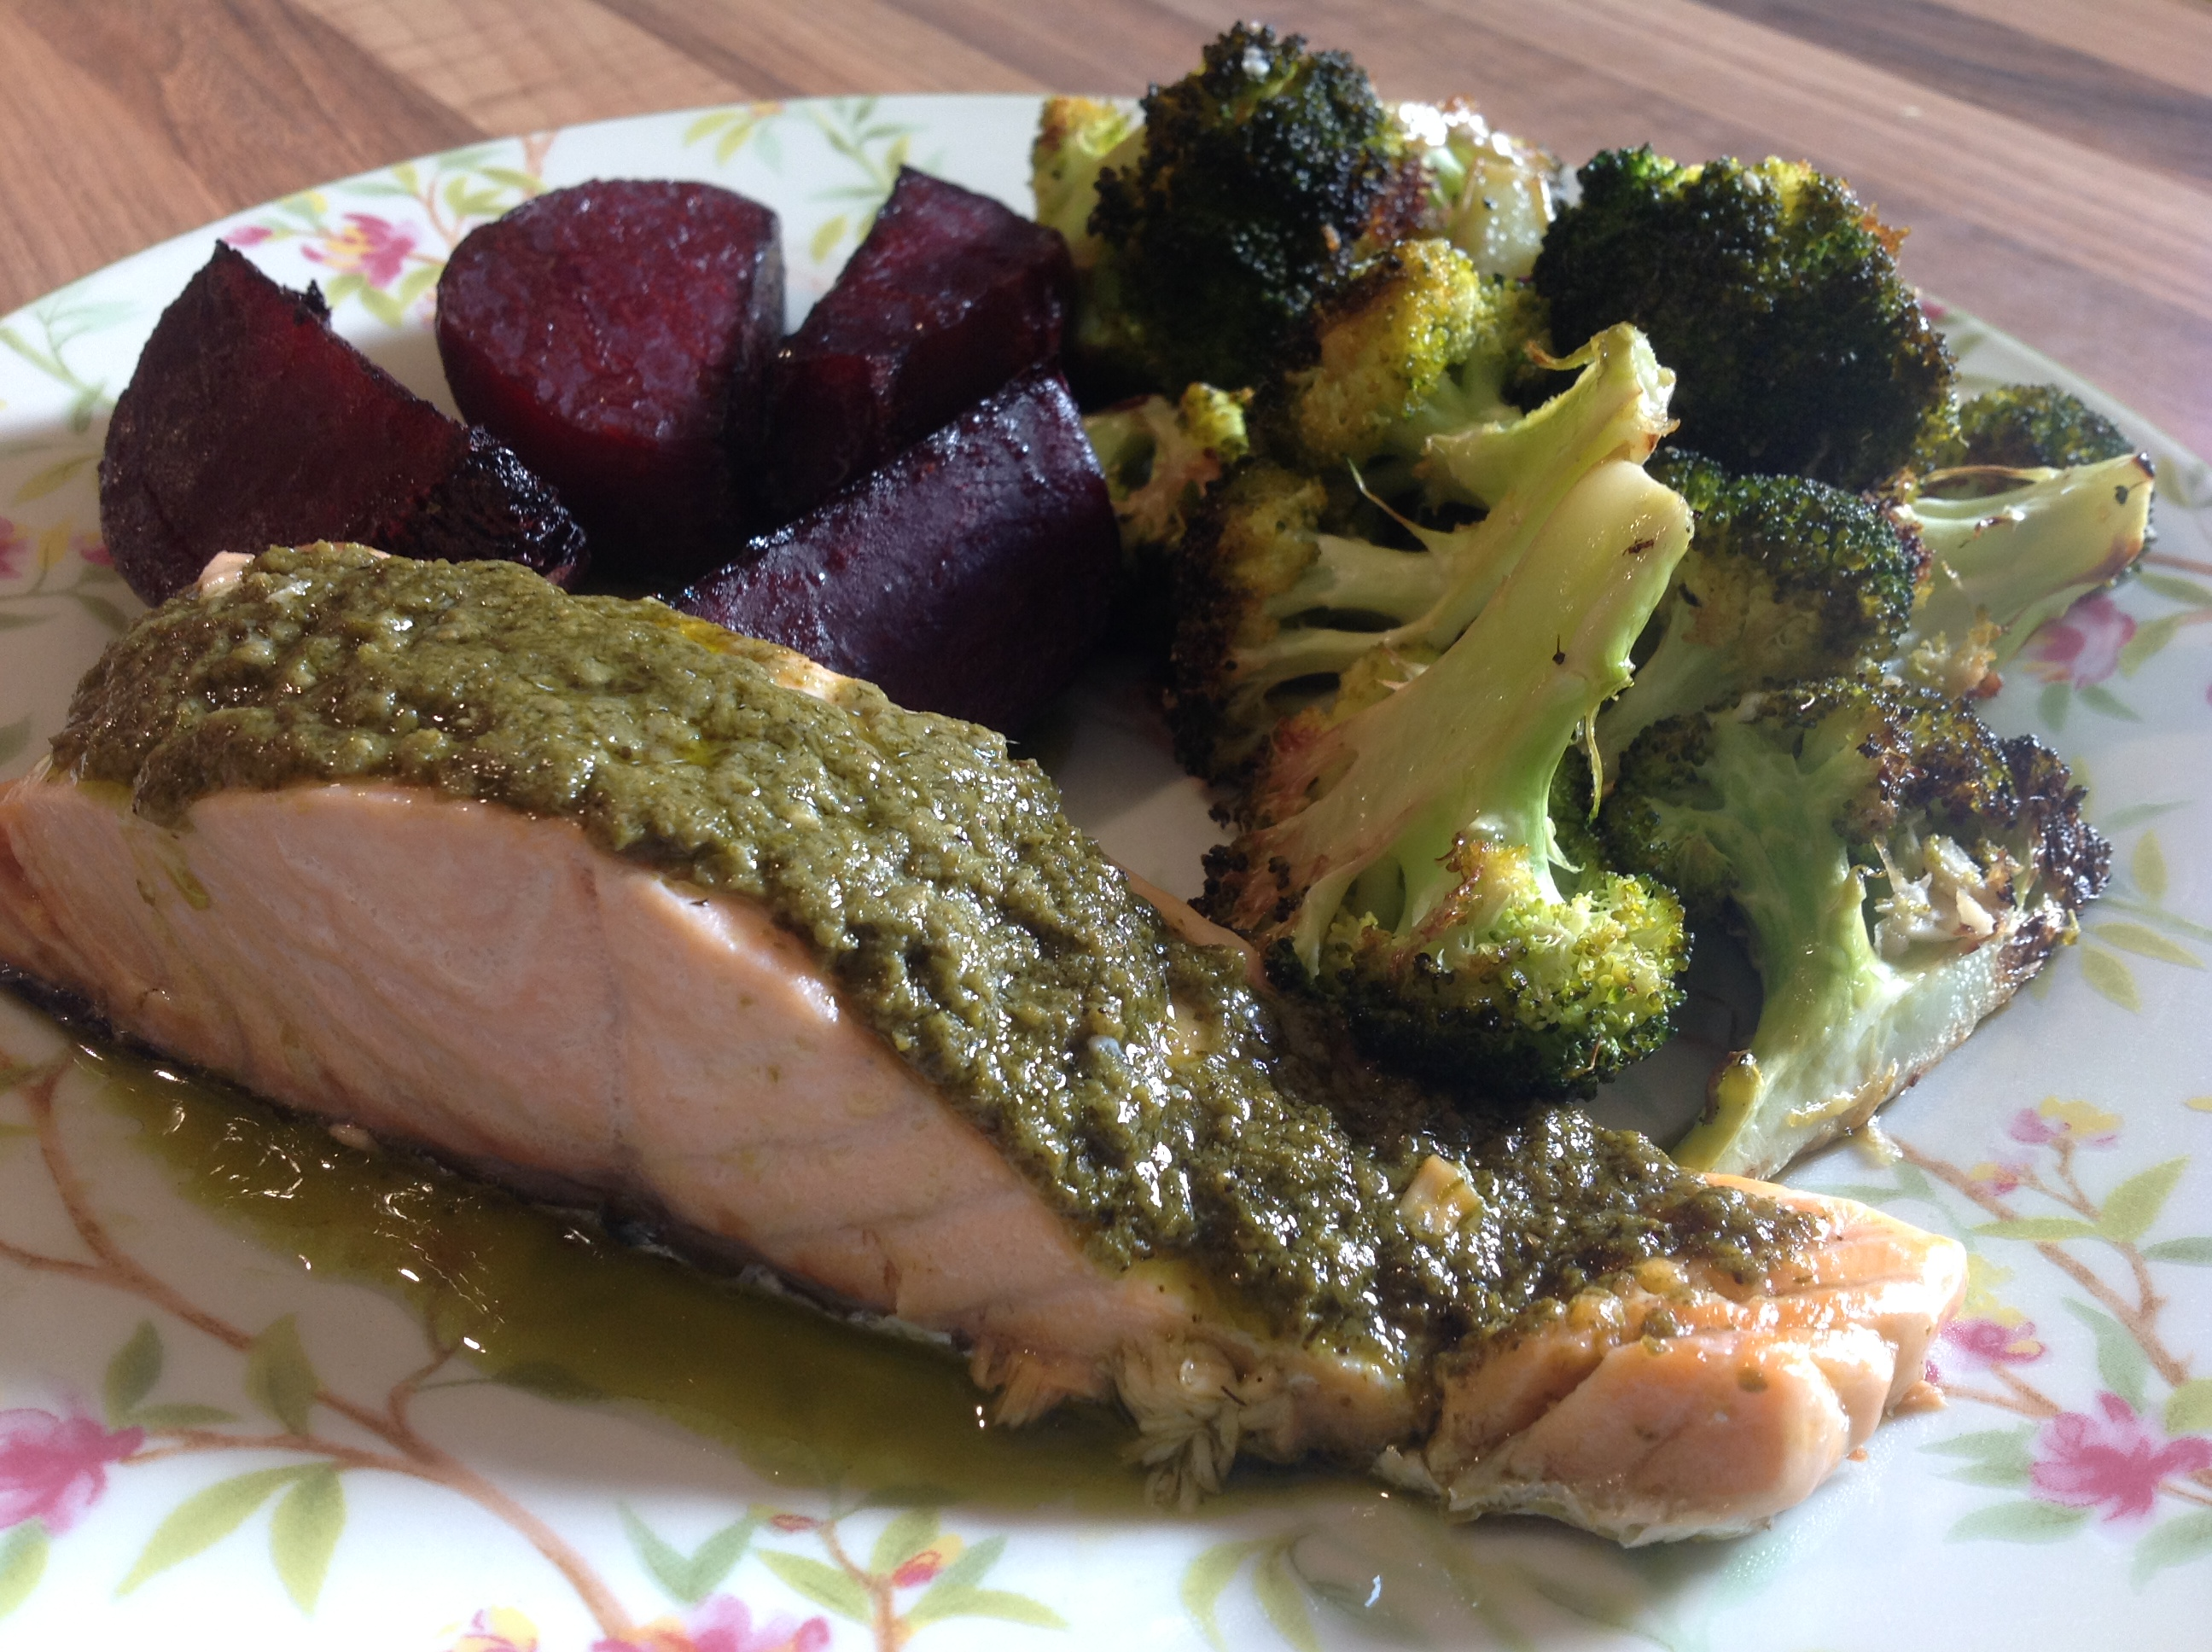 Salmon Fillet with roasted broccoli and beetroot